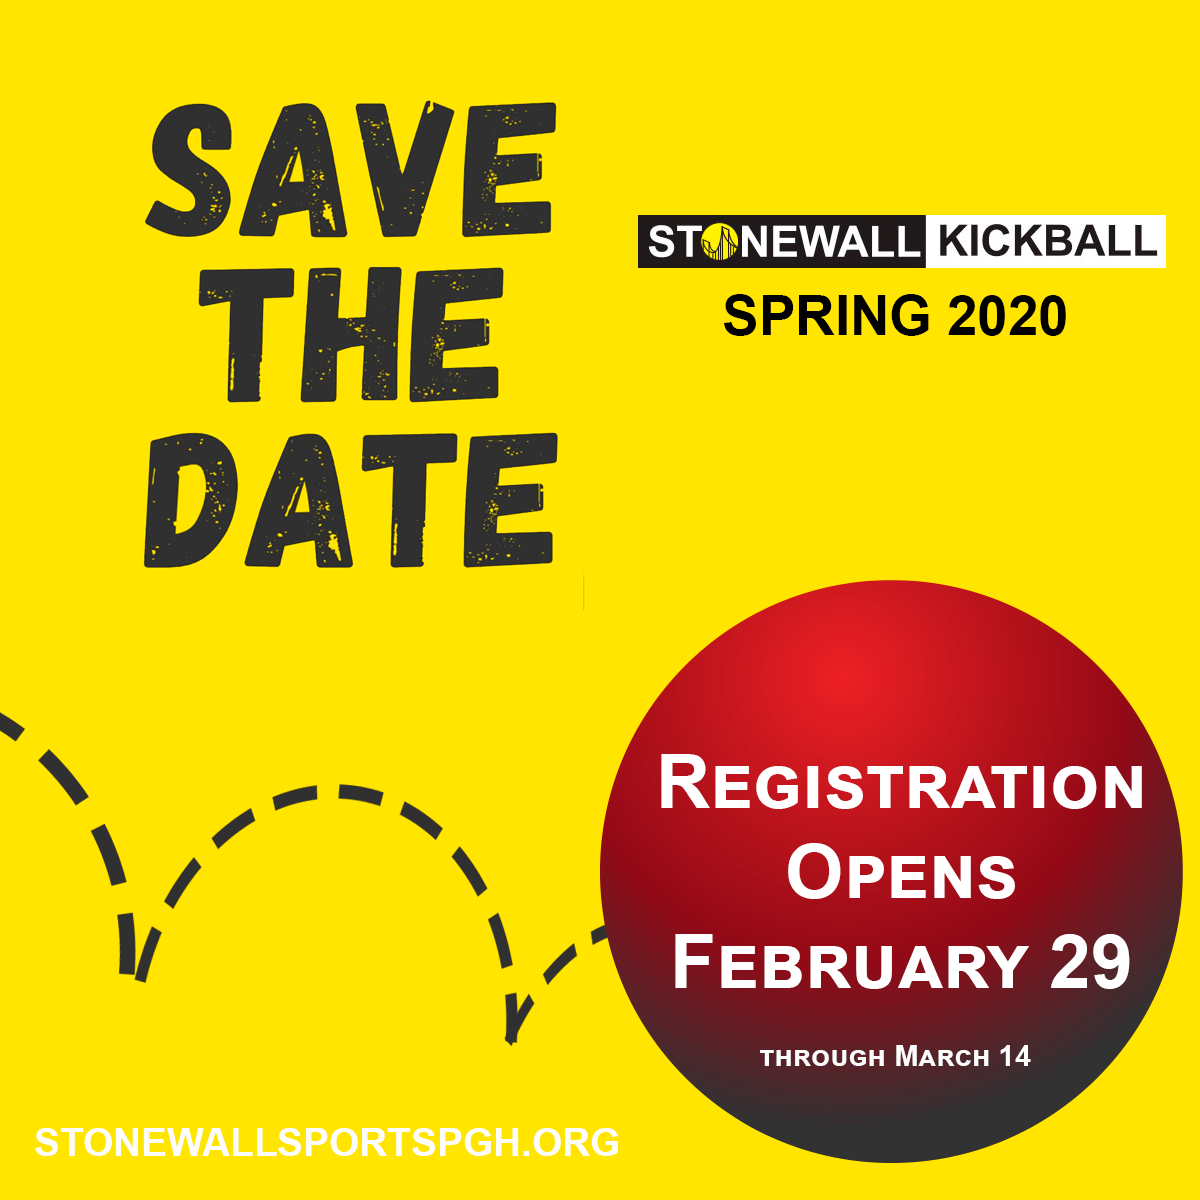 Kickball Registration